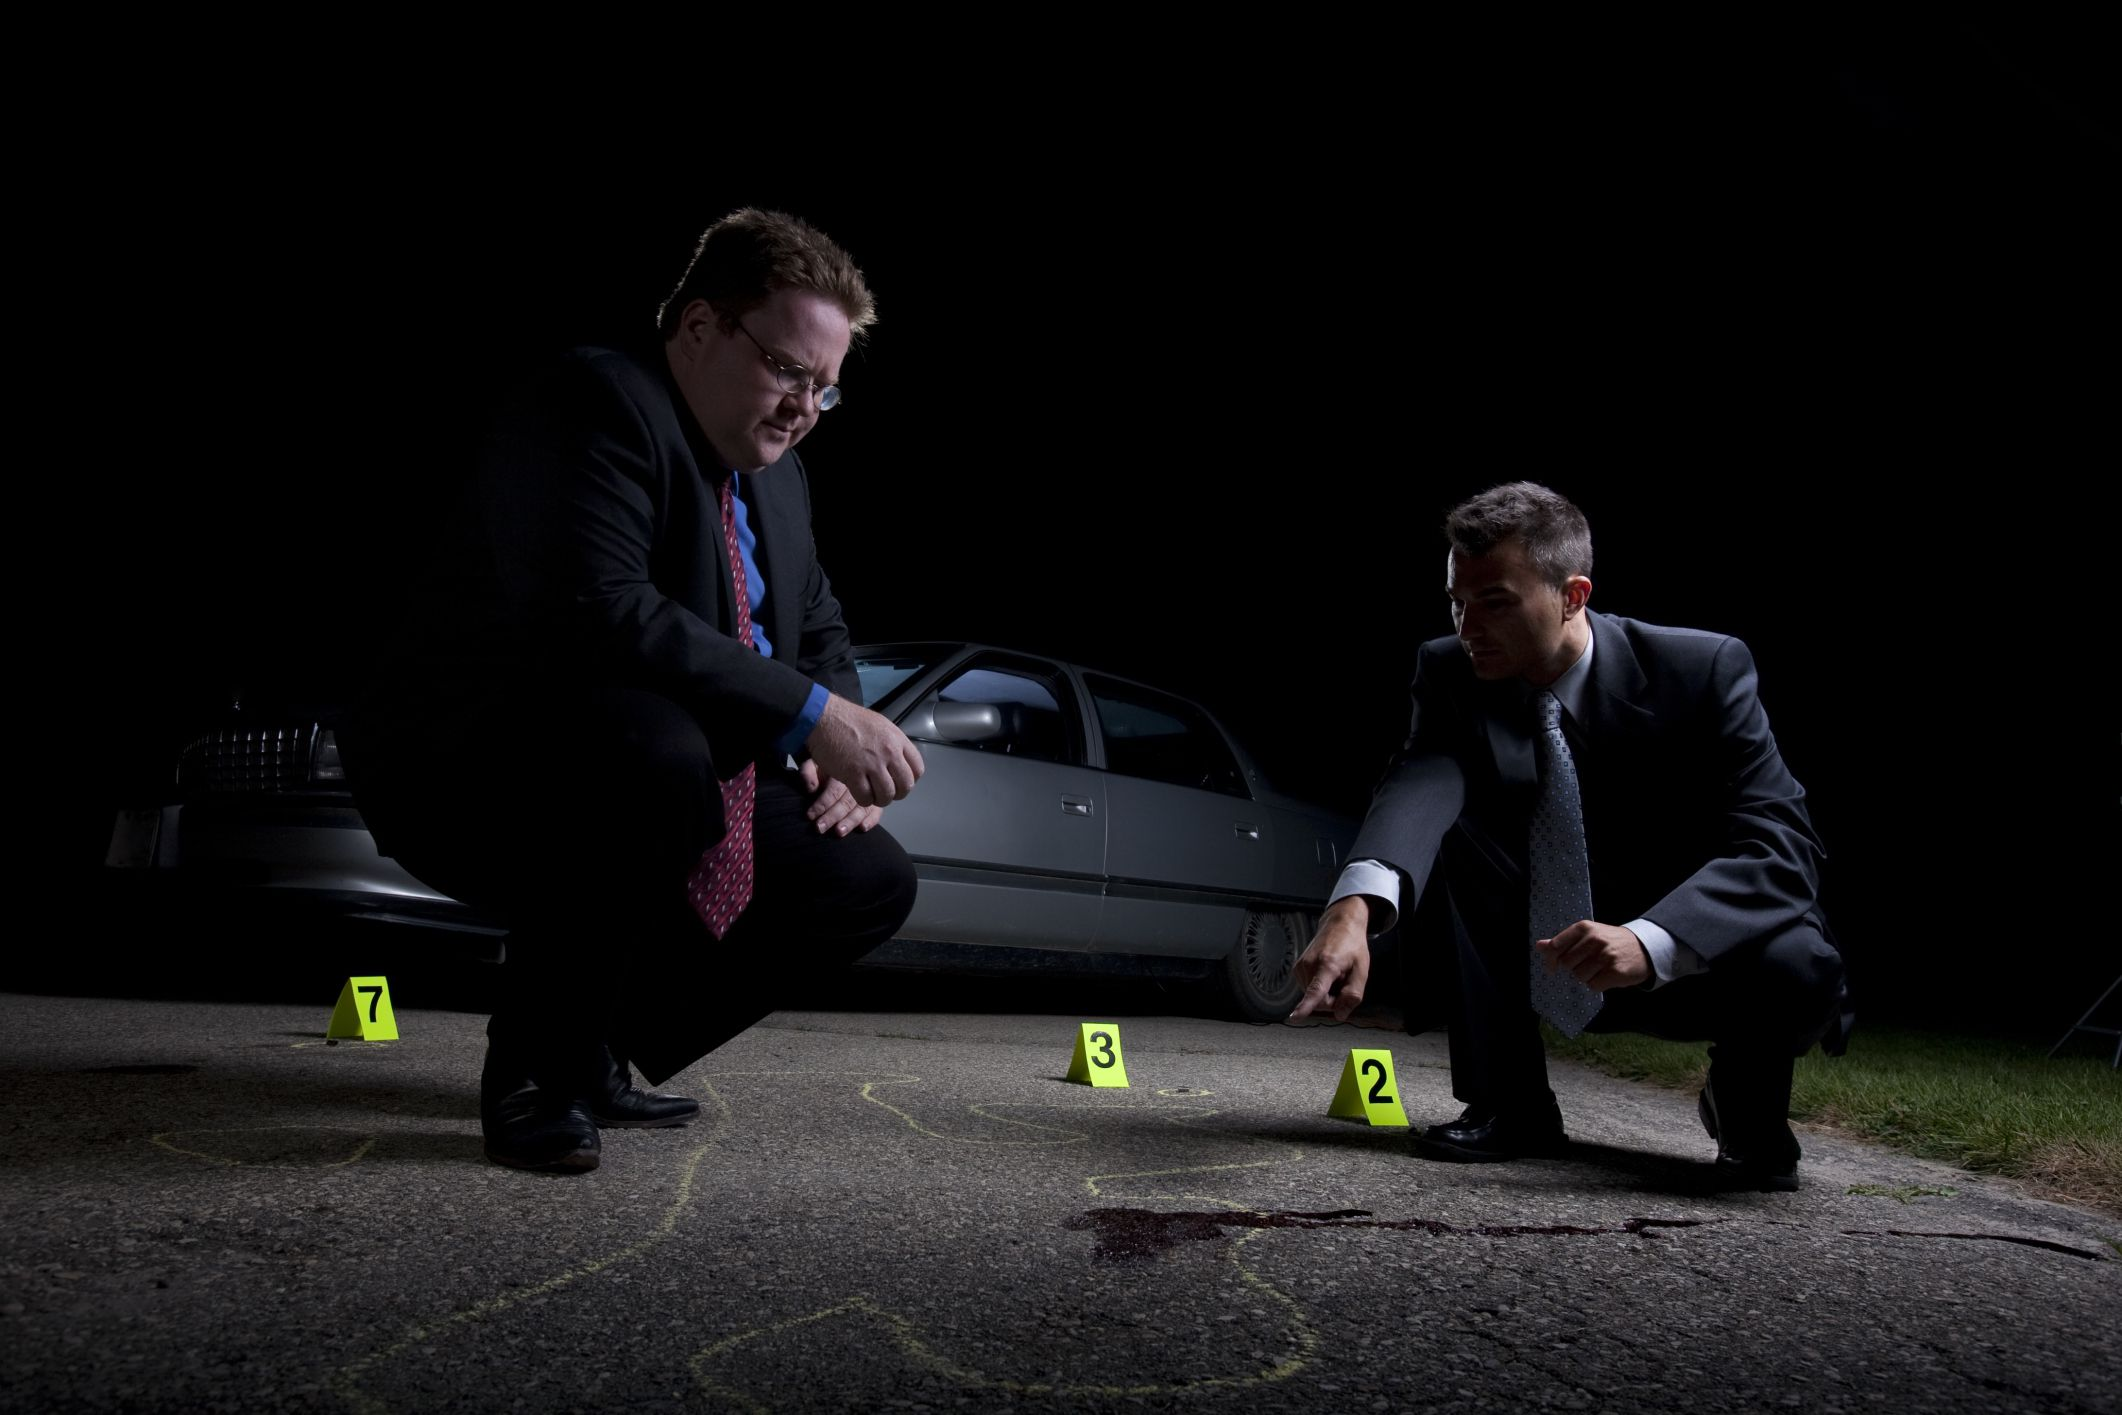 become a police detective of criminal investigator